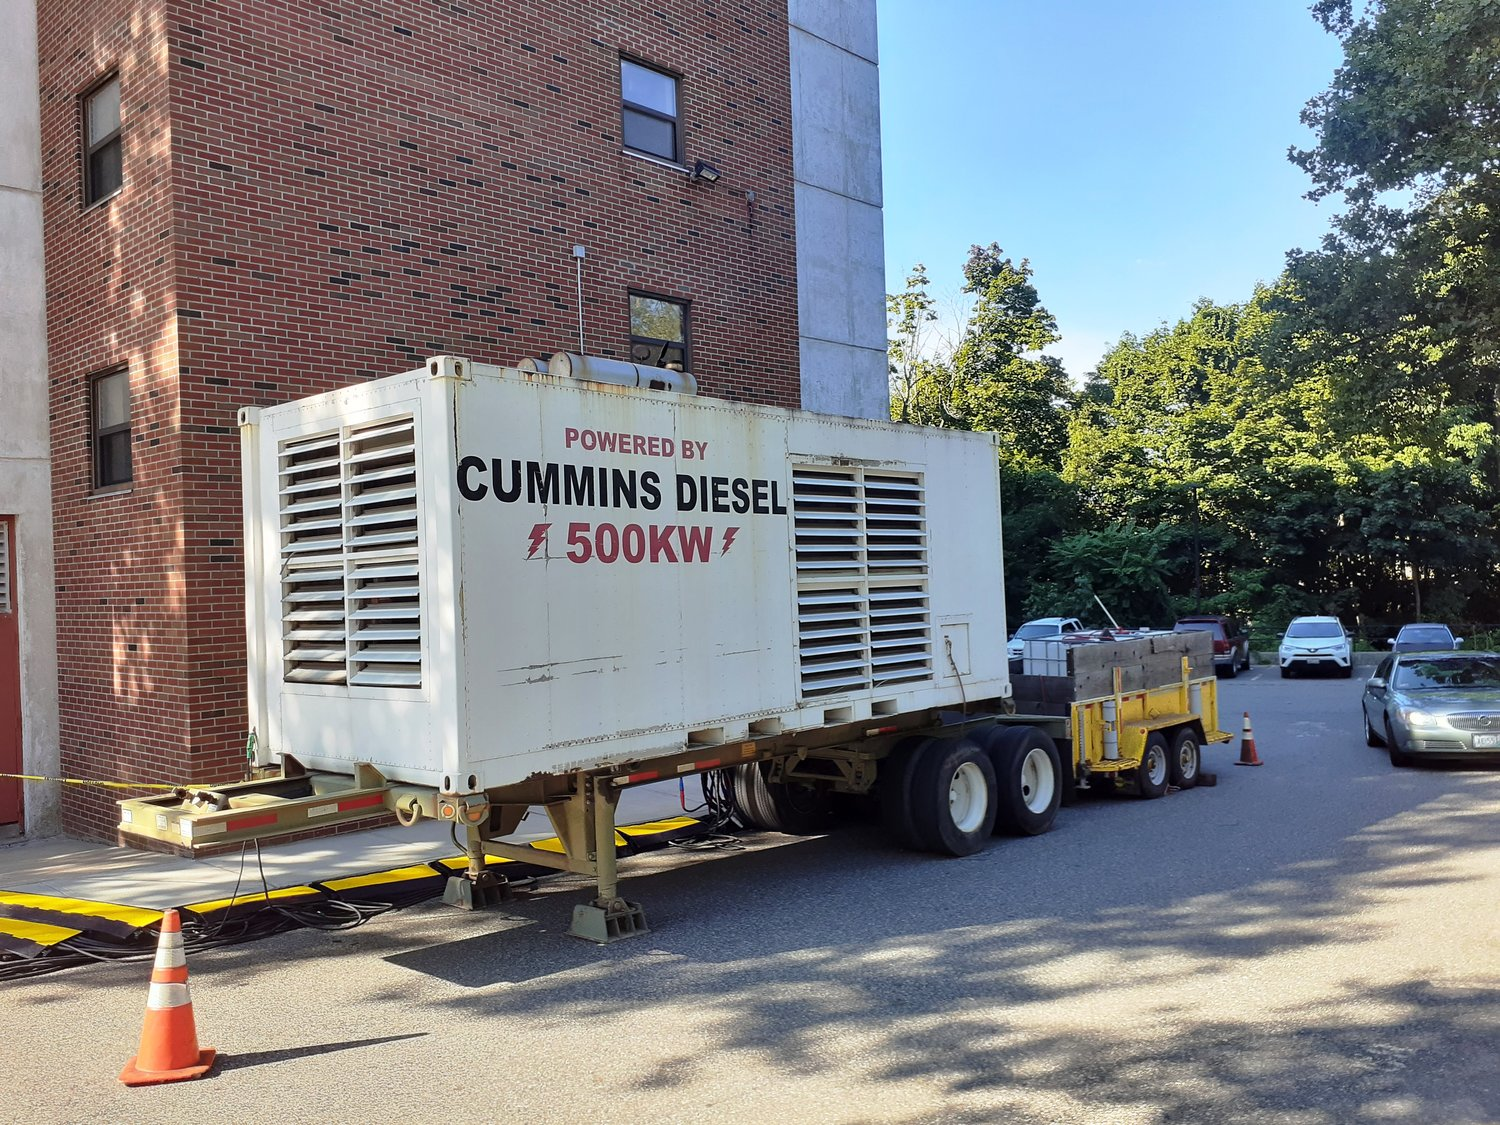 A 500 KW generator is now supplying Harborview with full power